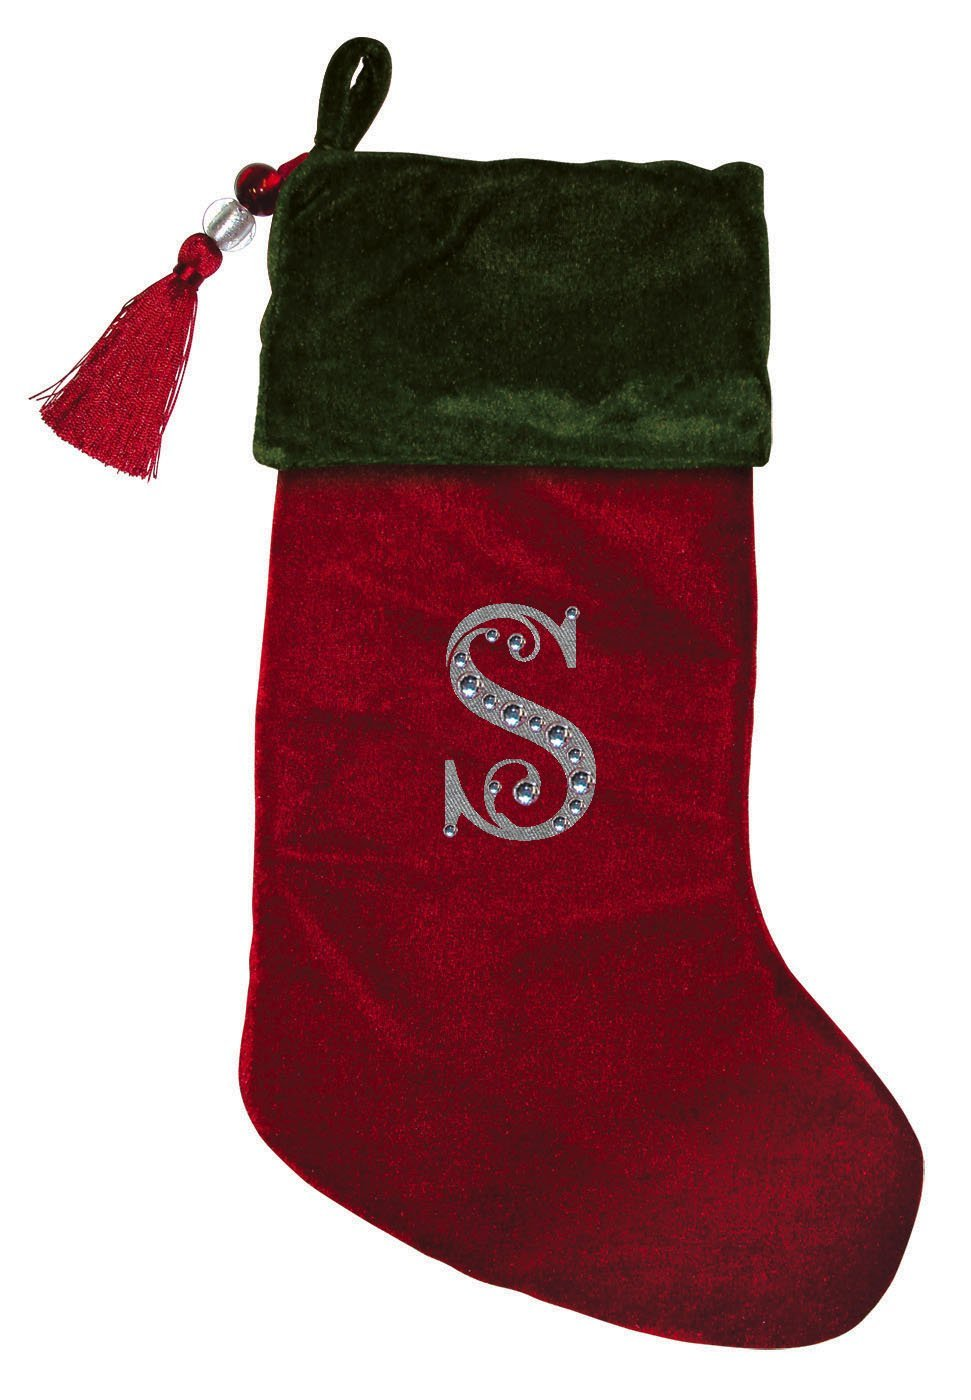 christmas stocking red green velvet with tassel rhinestone monogram a the size is 80 x 185 by evergreen from usa walmartcom